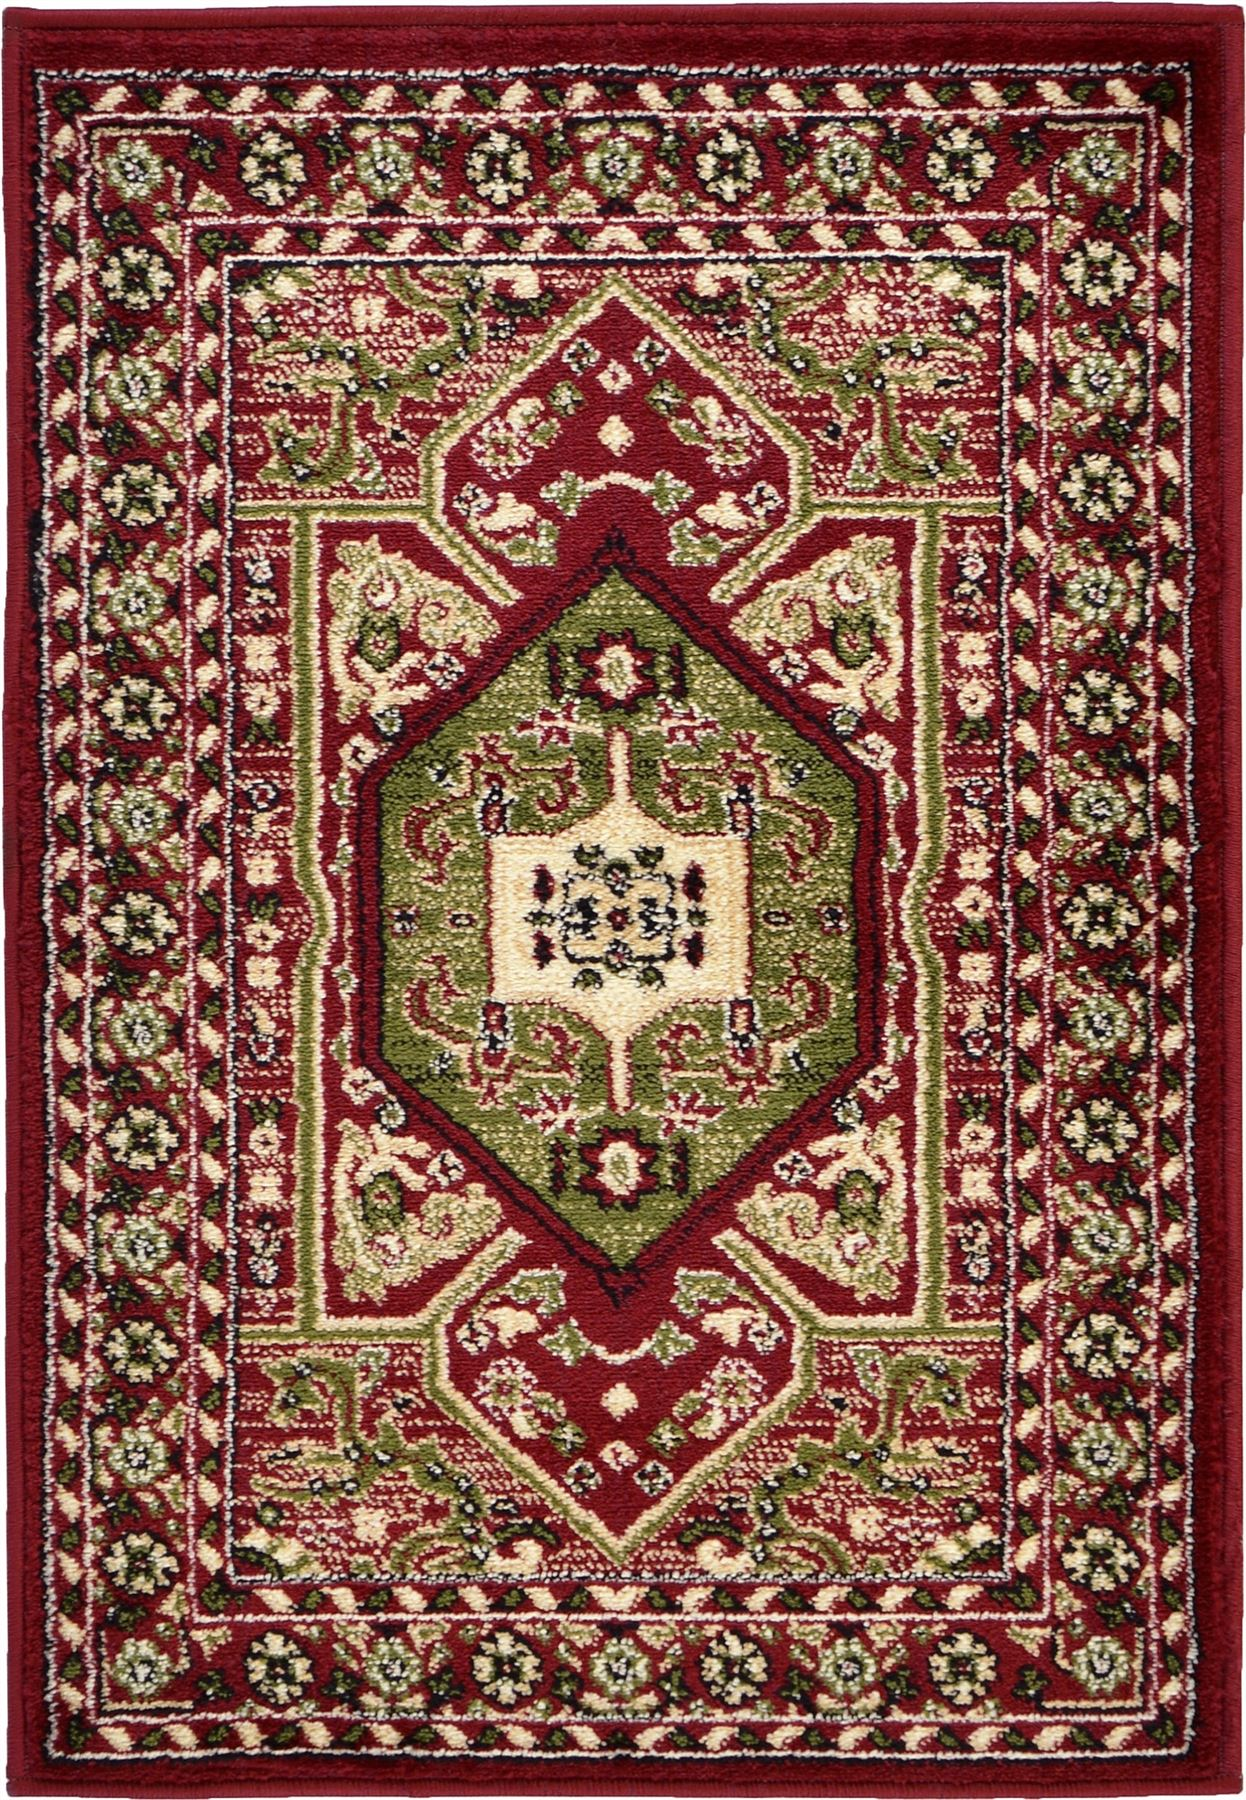 Traditional Rug Oriental Area Rug Persian Style Rugs Carpets  8 Sizes  Color  eBay